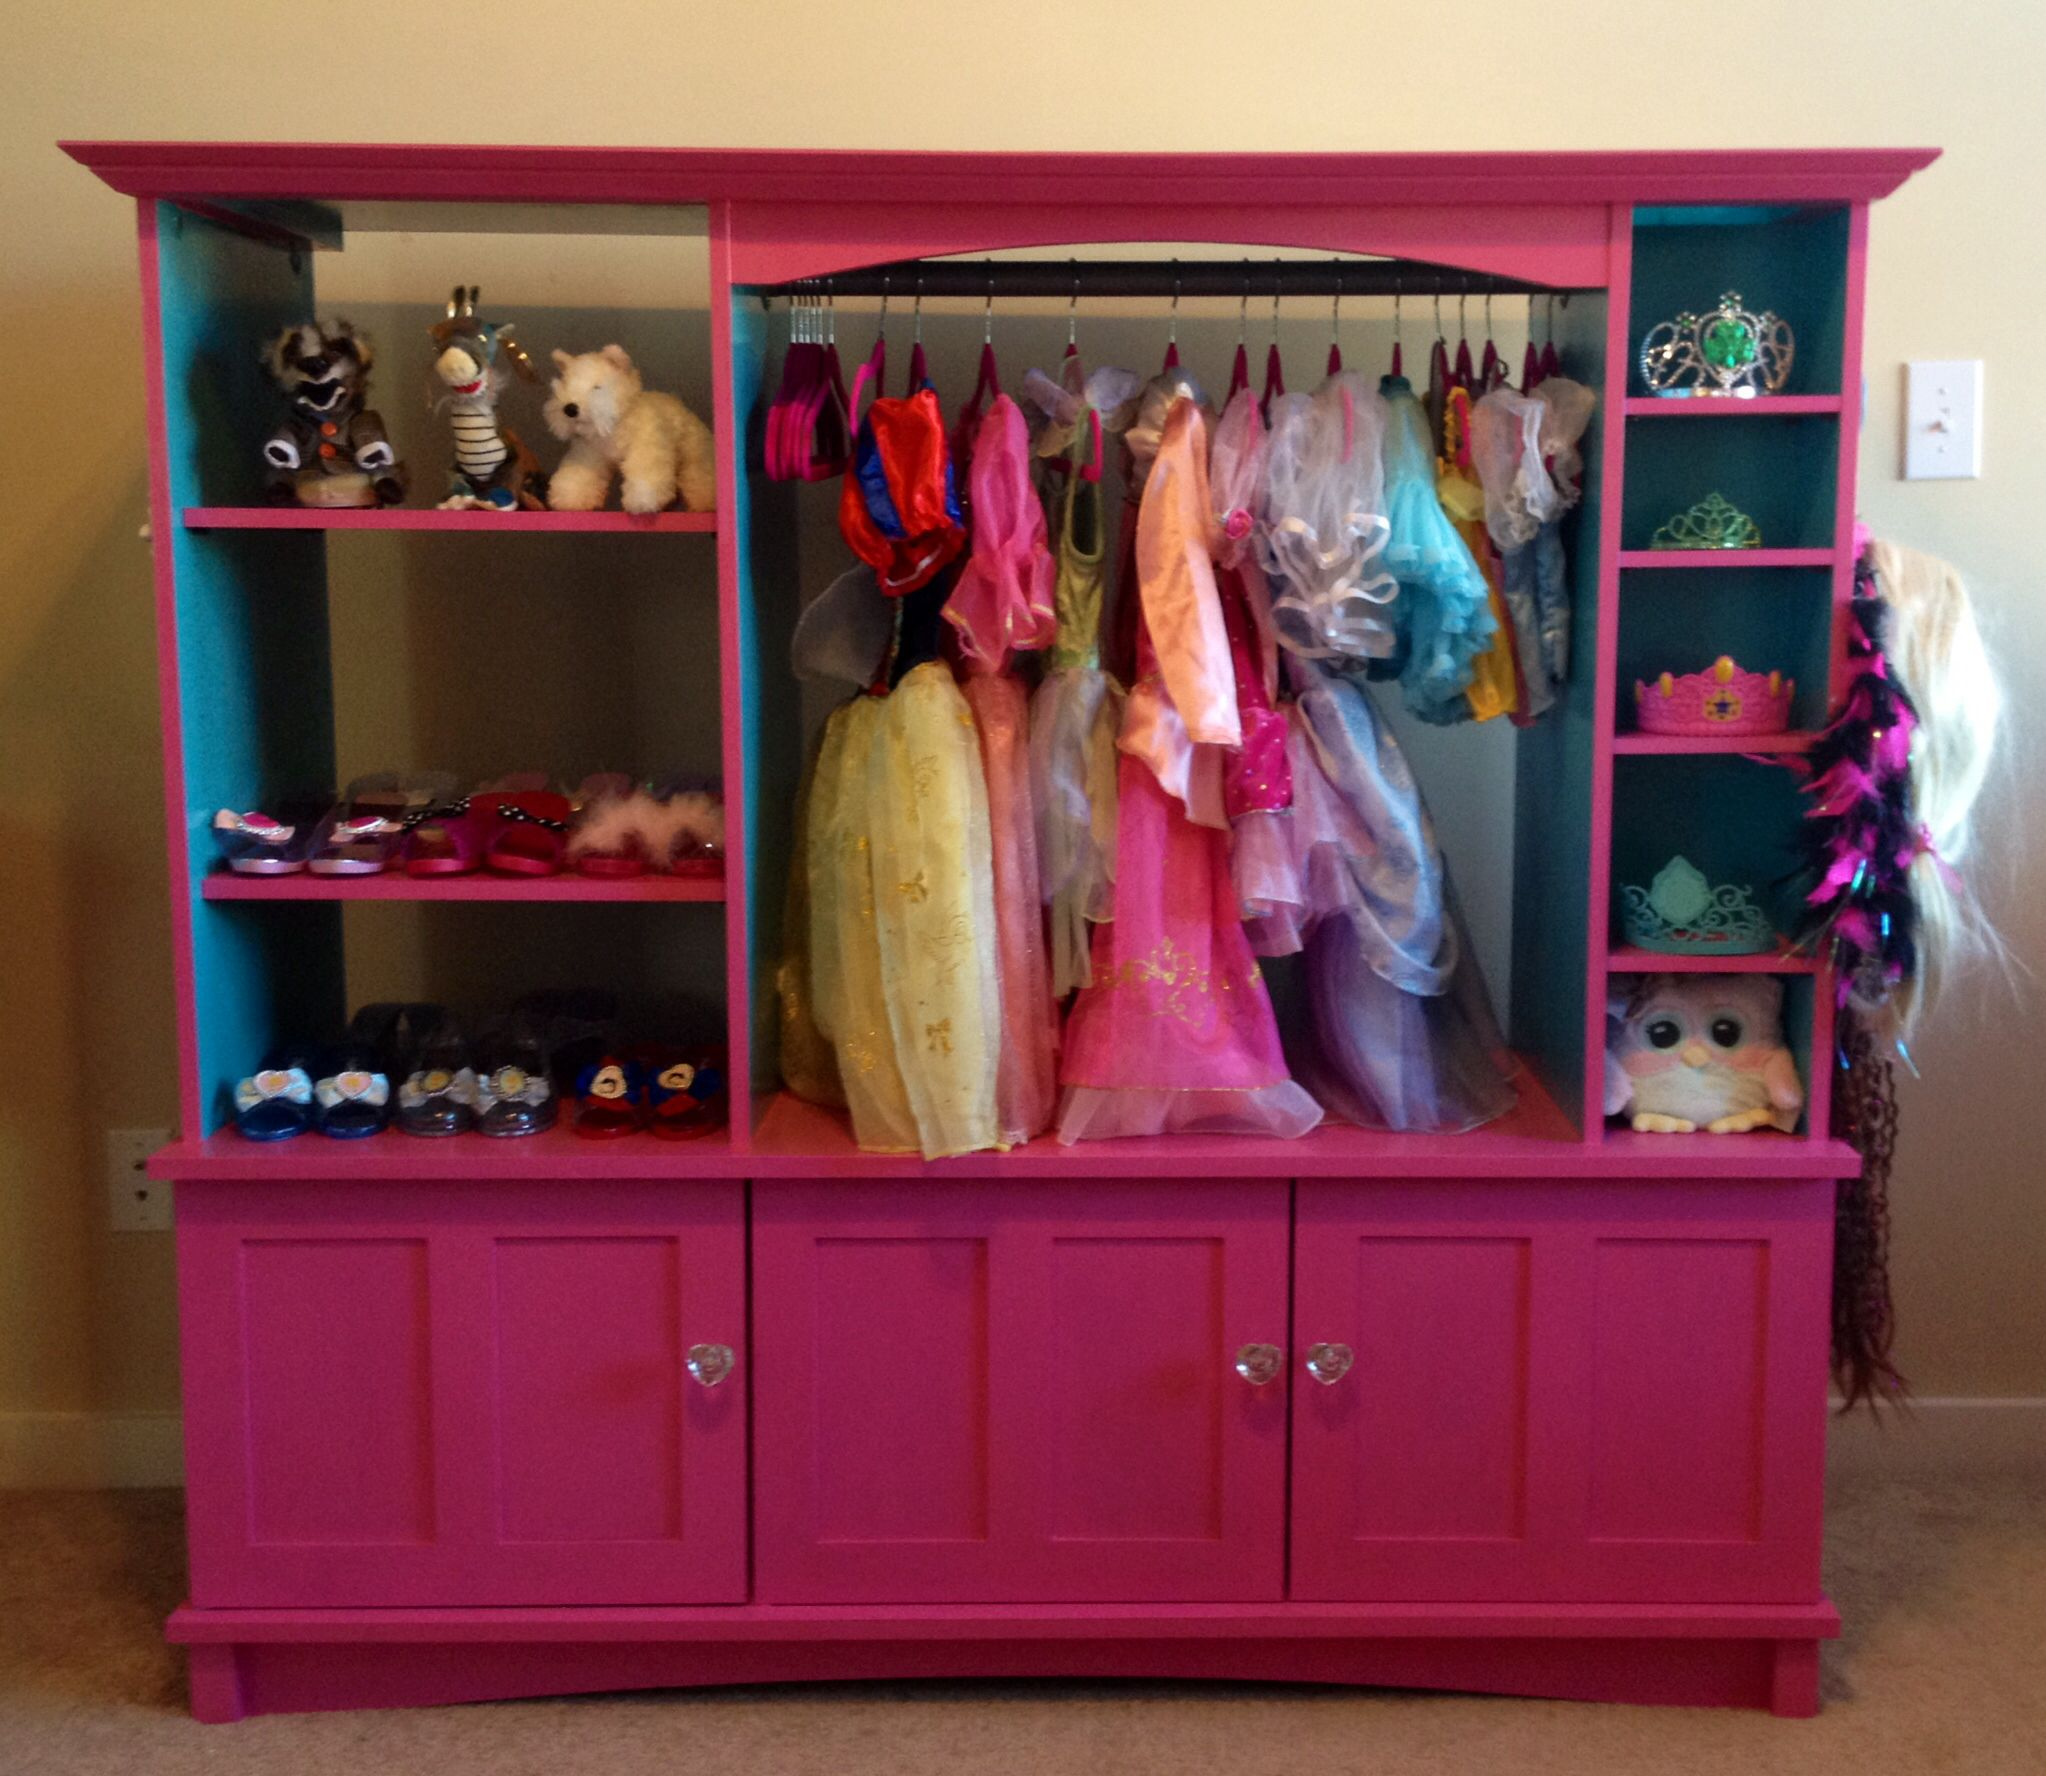 Dress Up Closet Made Out Of An Old Entertainment Center.